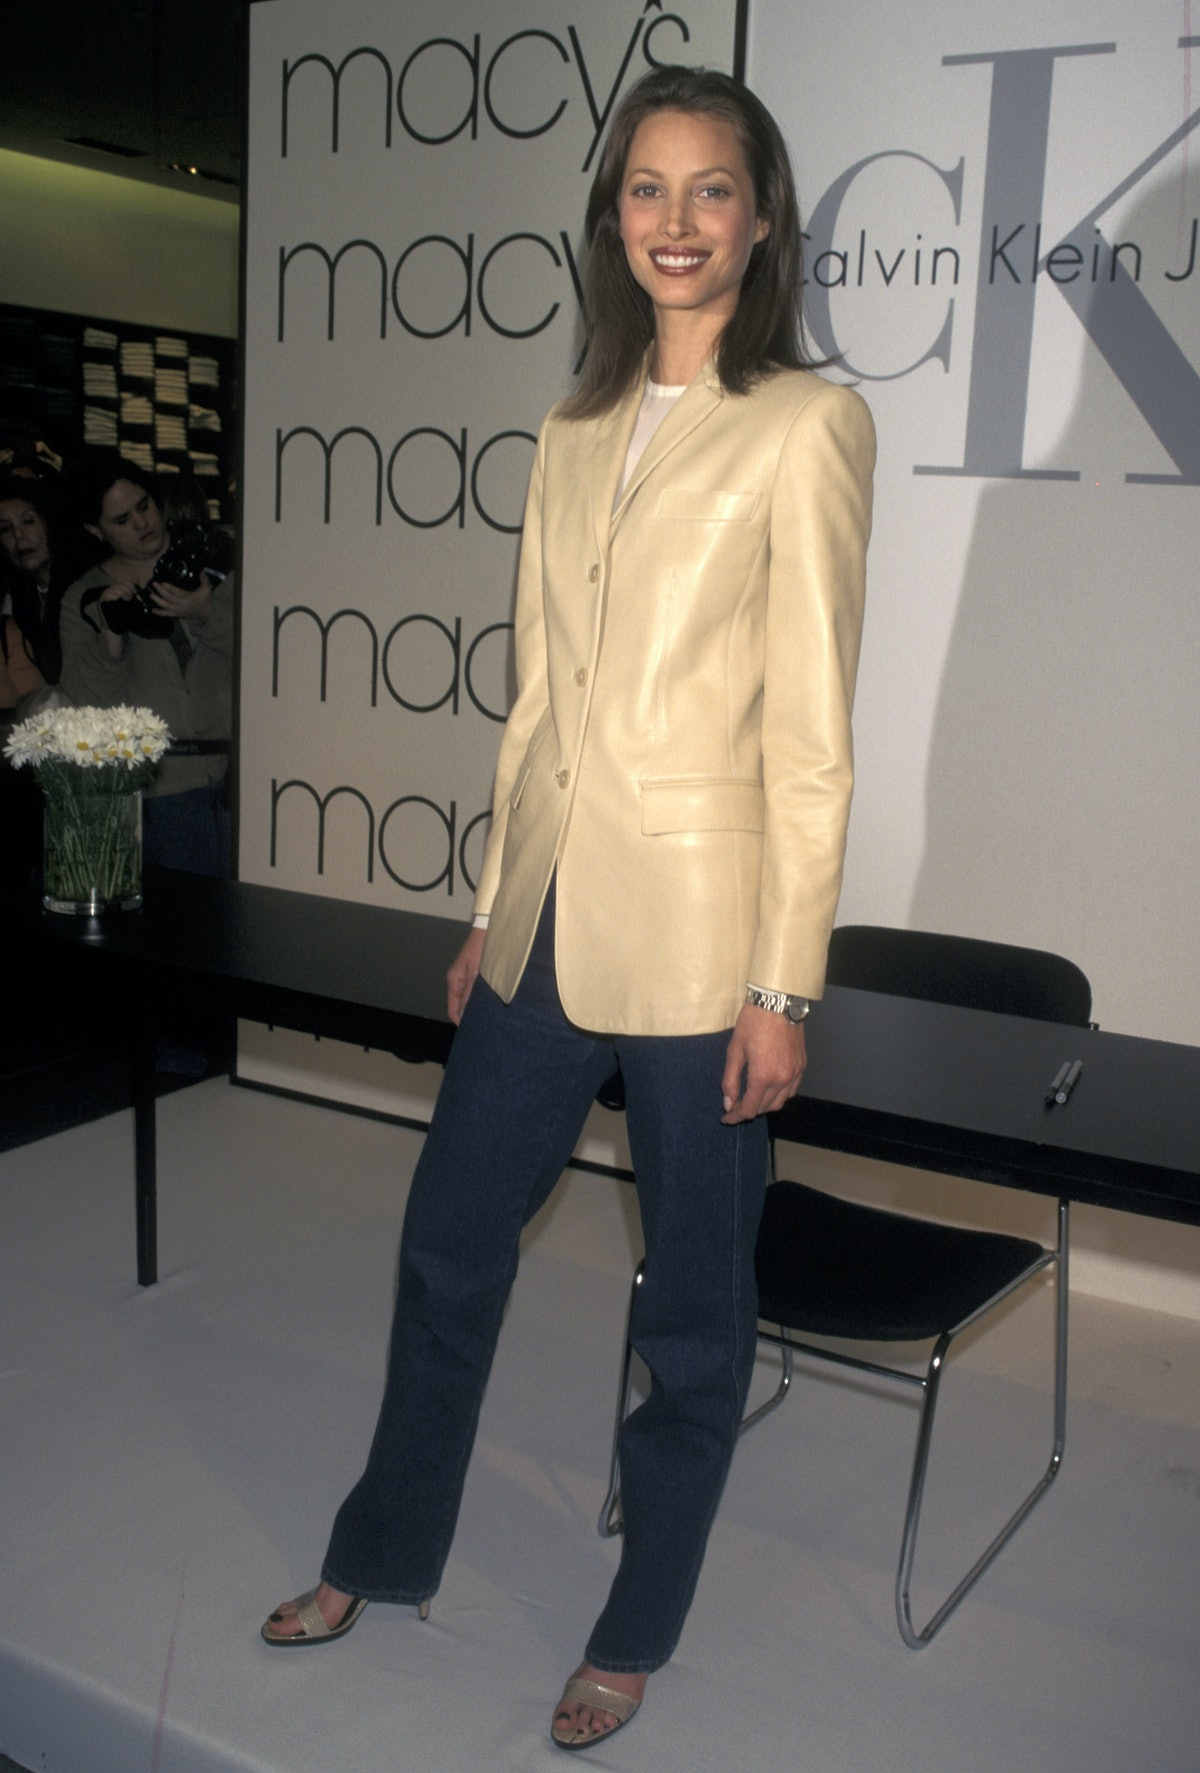 Christy Turlington In Store Appearance in New York City - March 26, 1998